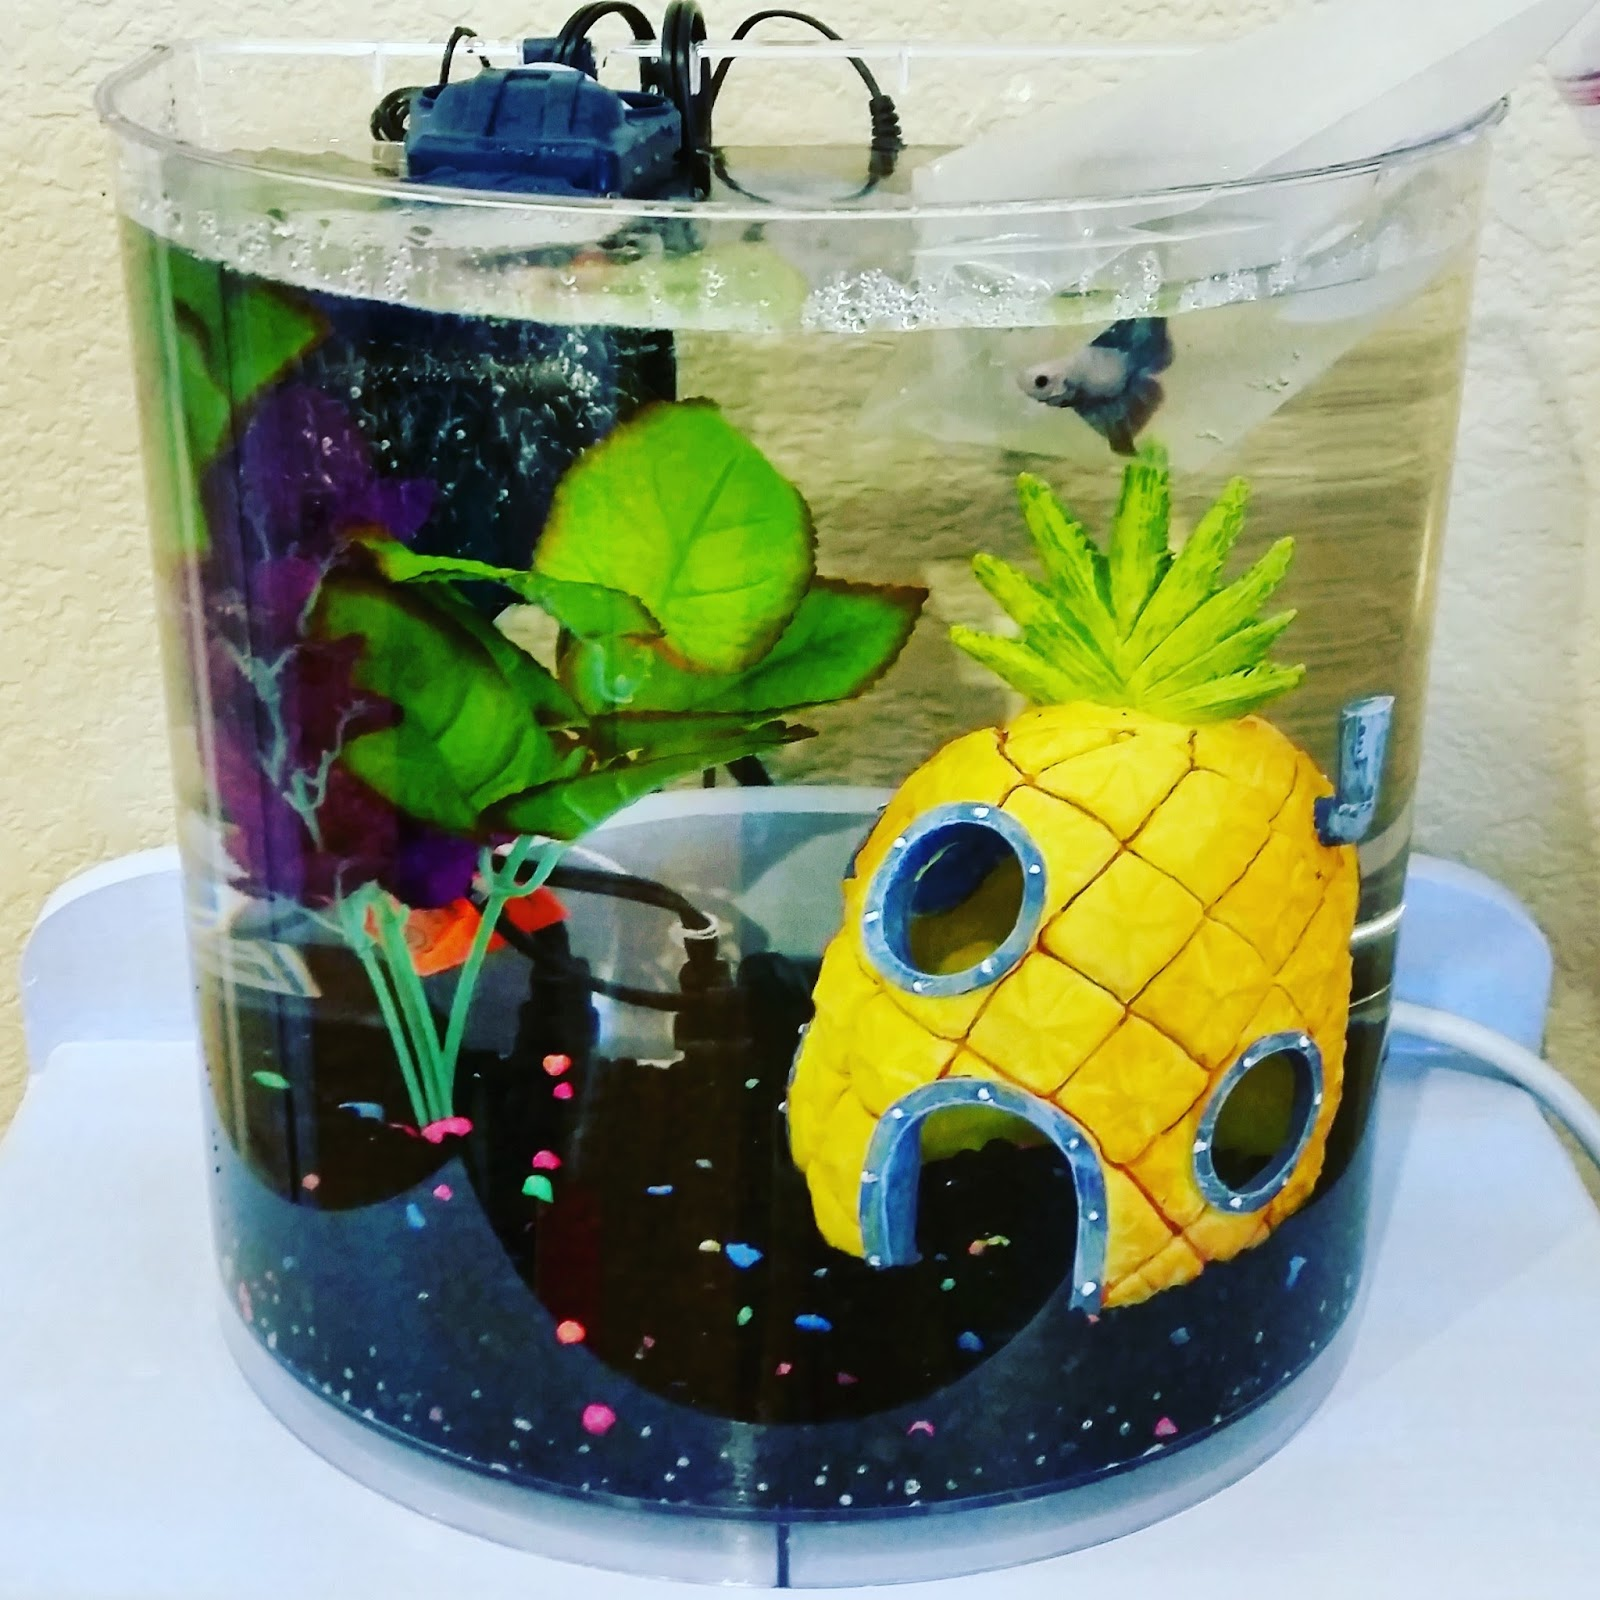 A gamer 39 s wife my aquarium journey from newbie to addict for Betta fish tank decorations